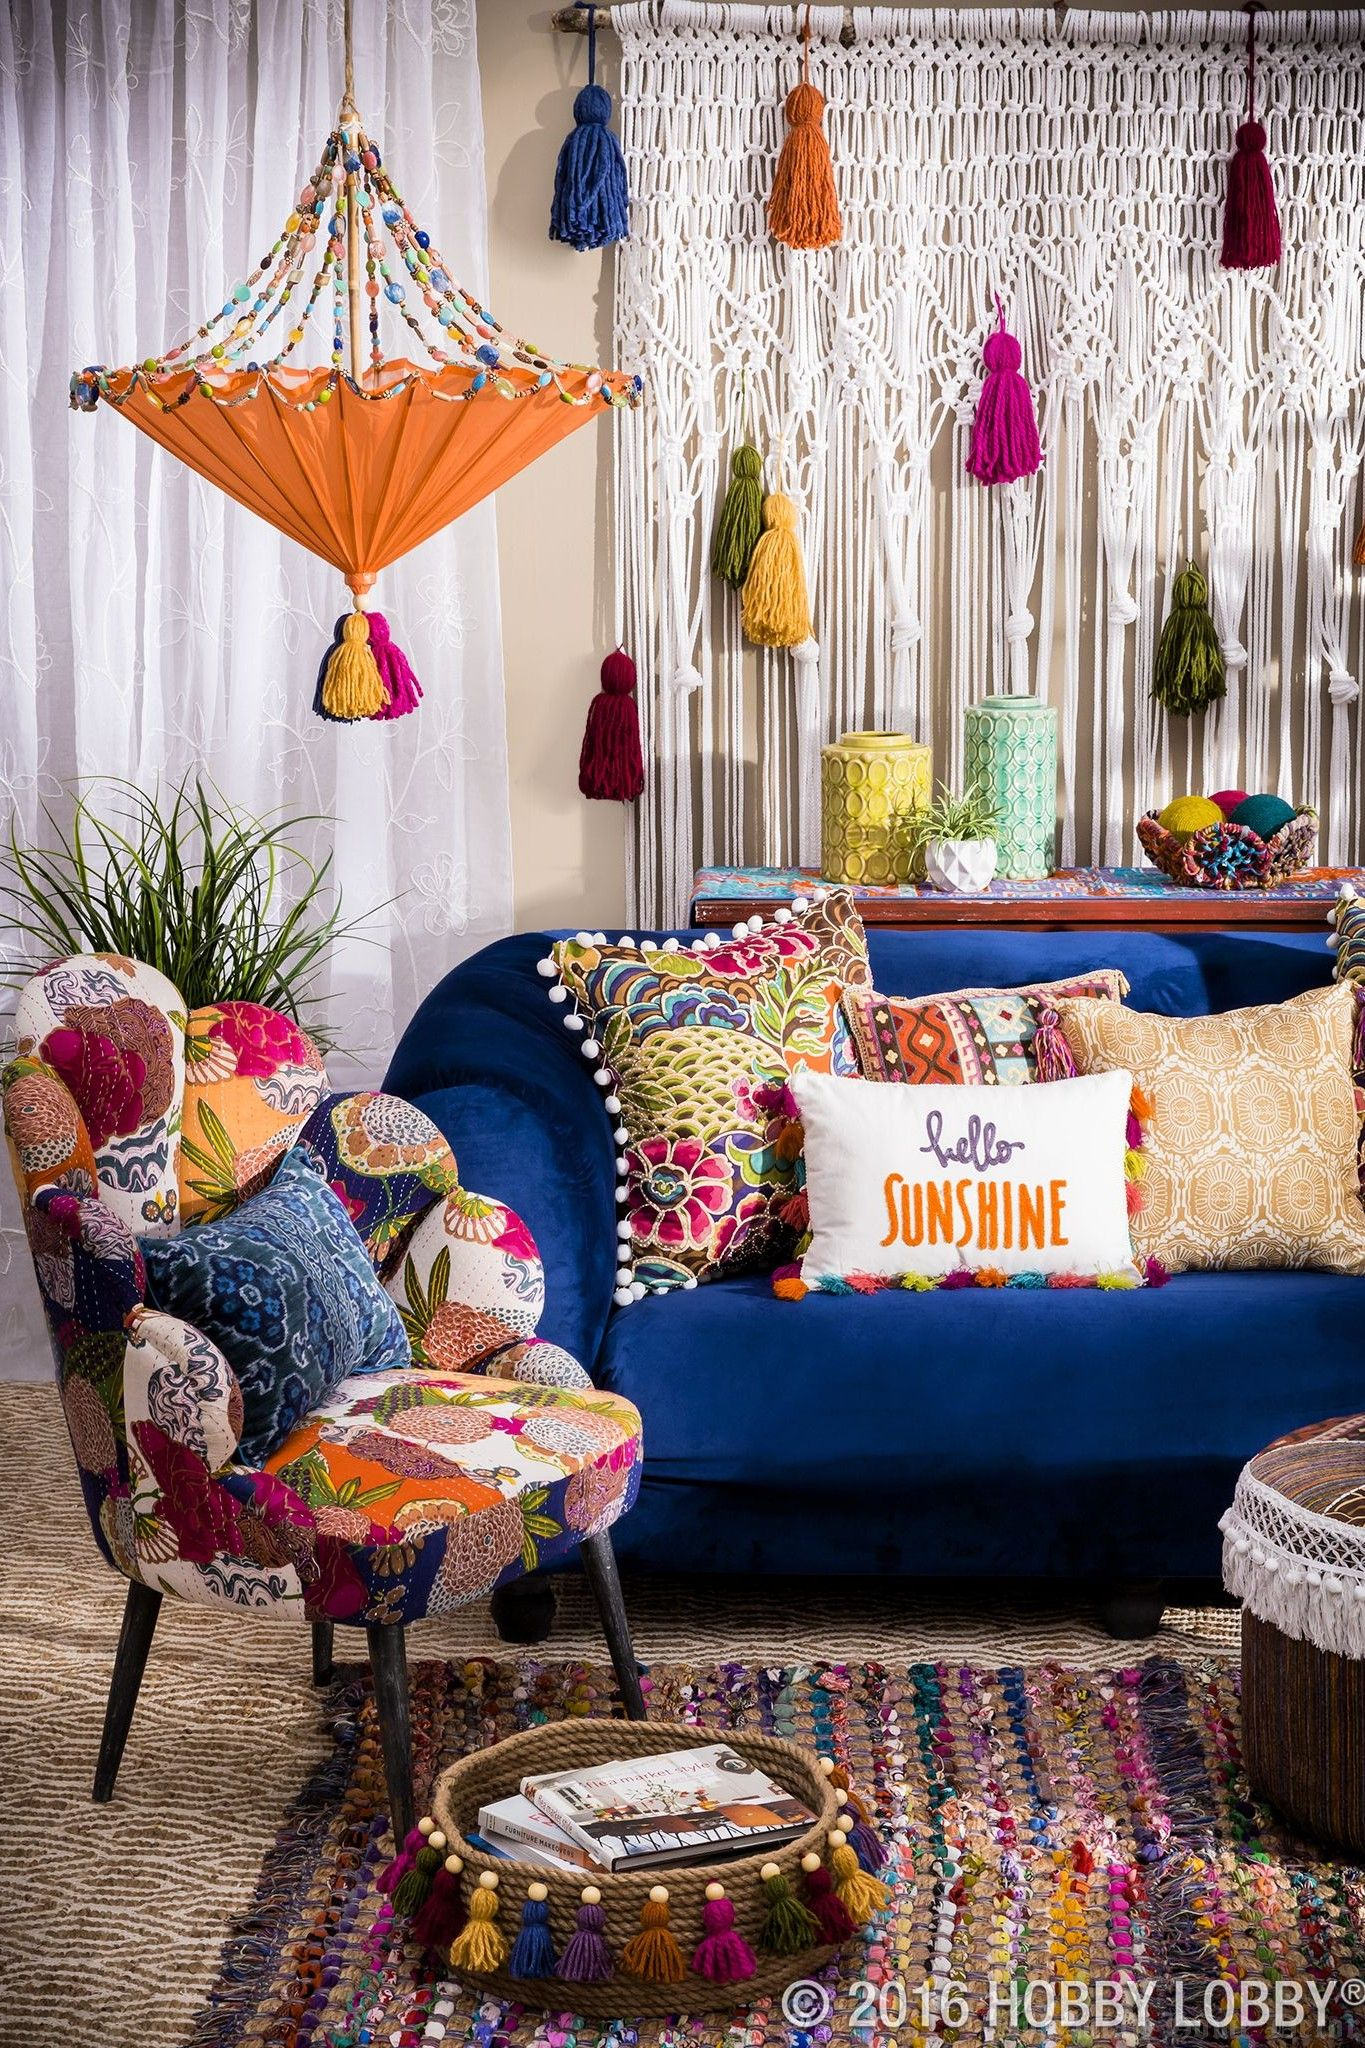 How Much Do You Charge For Bohemian Home Decor